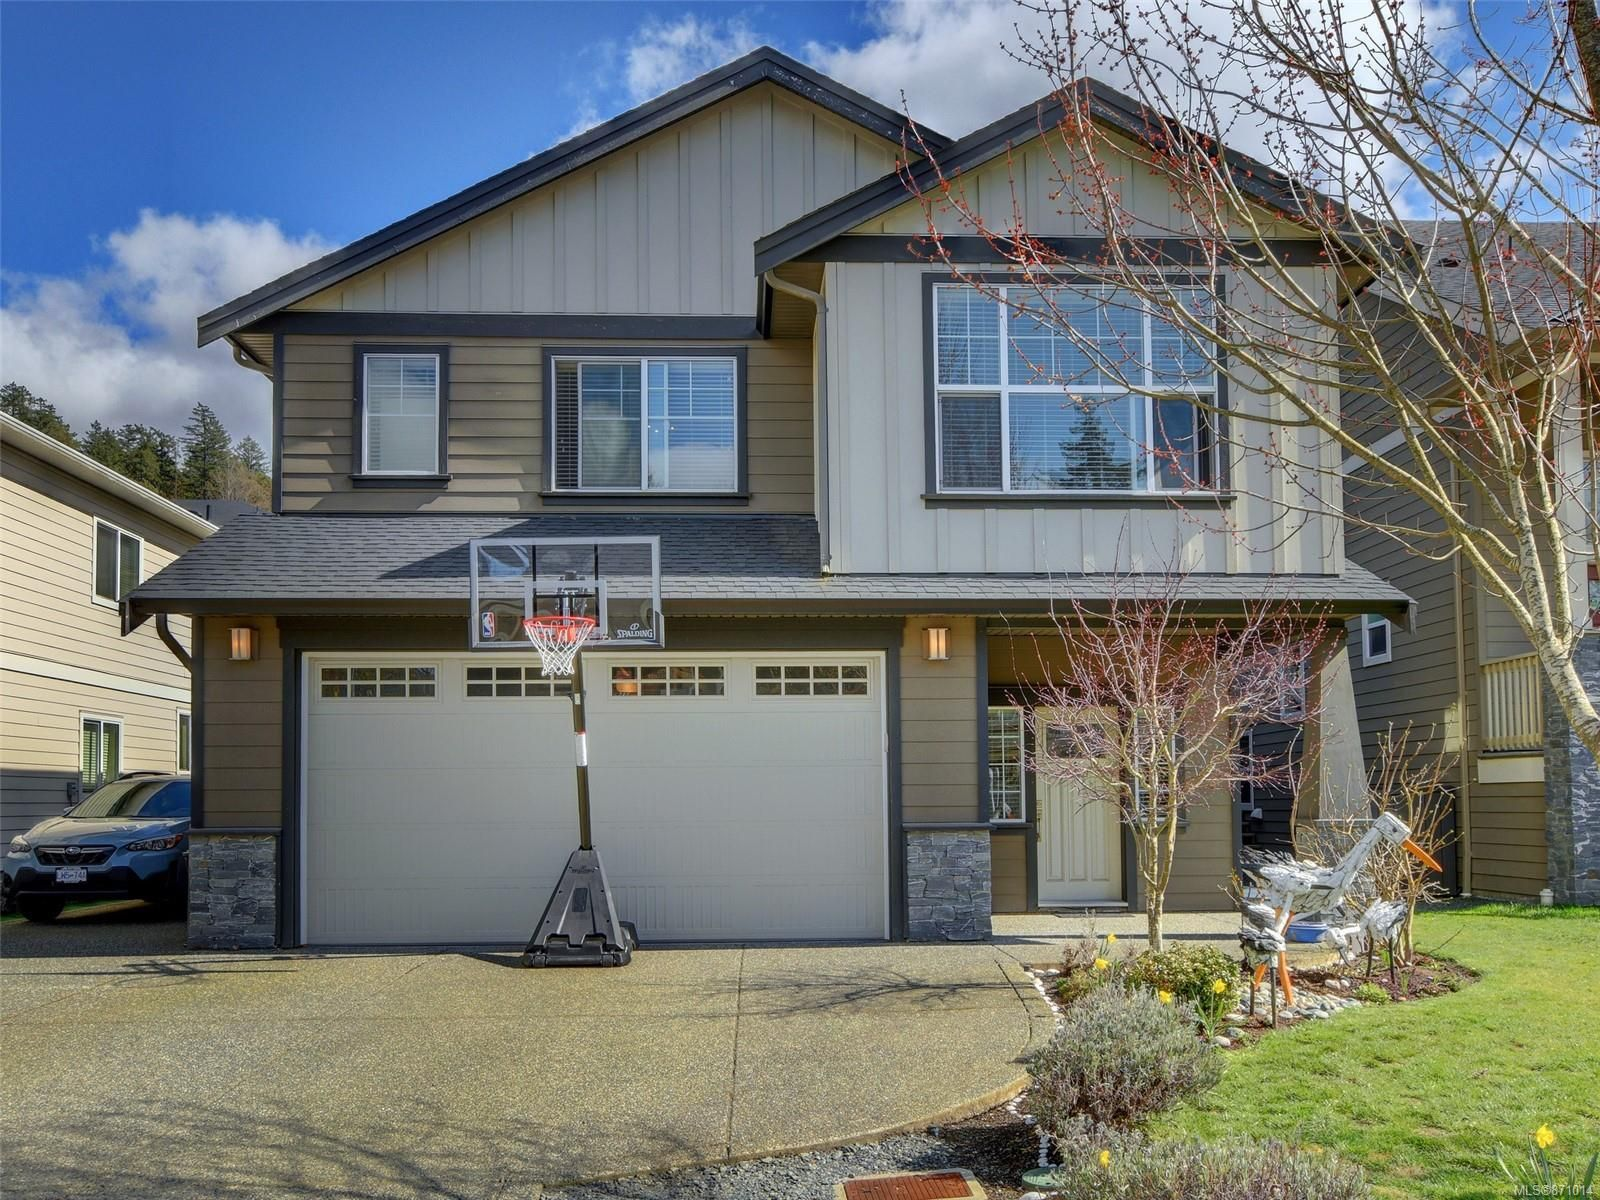 Main Photo: 3414 Ambrosia Cres in : La Happy Valley House for sale (Langford)  : MLS®# 871014